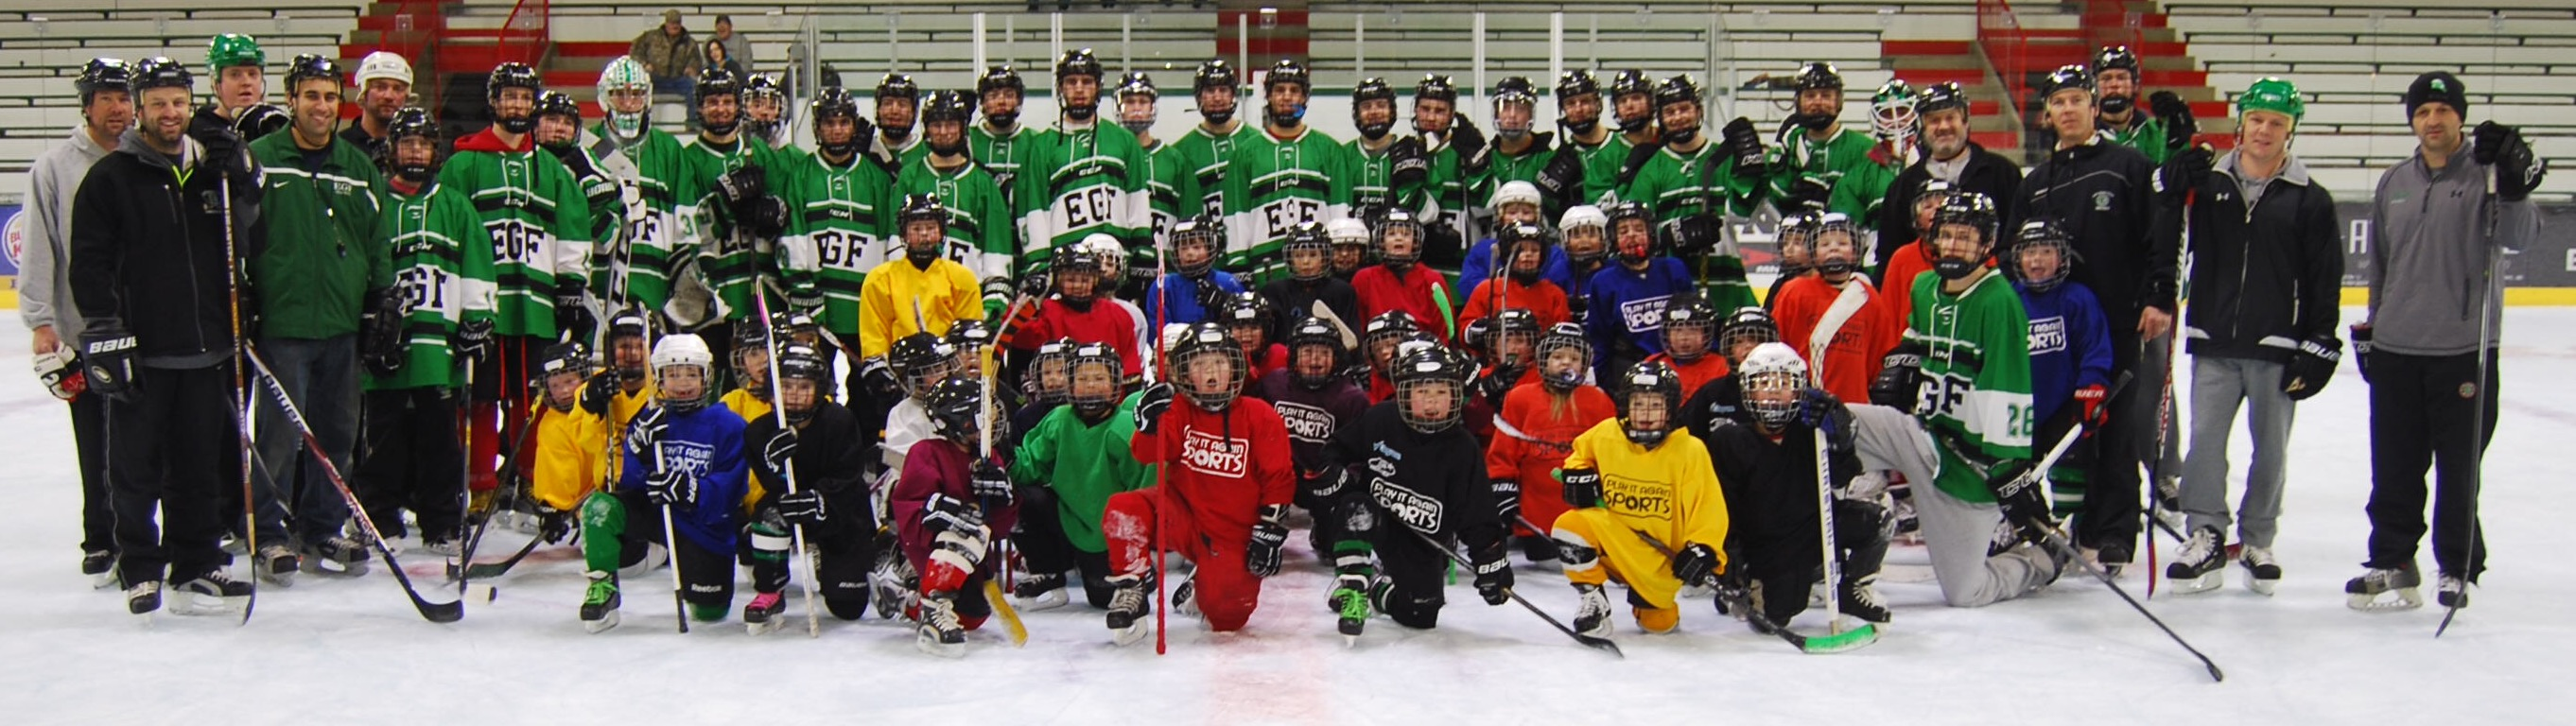 Hockey Teams and Coaches